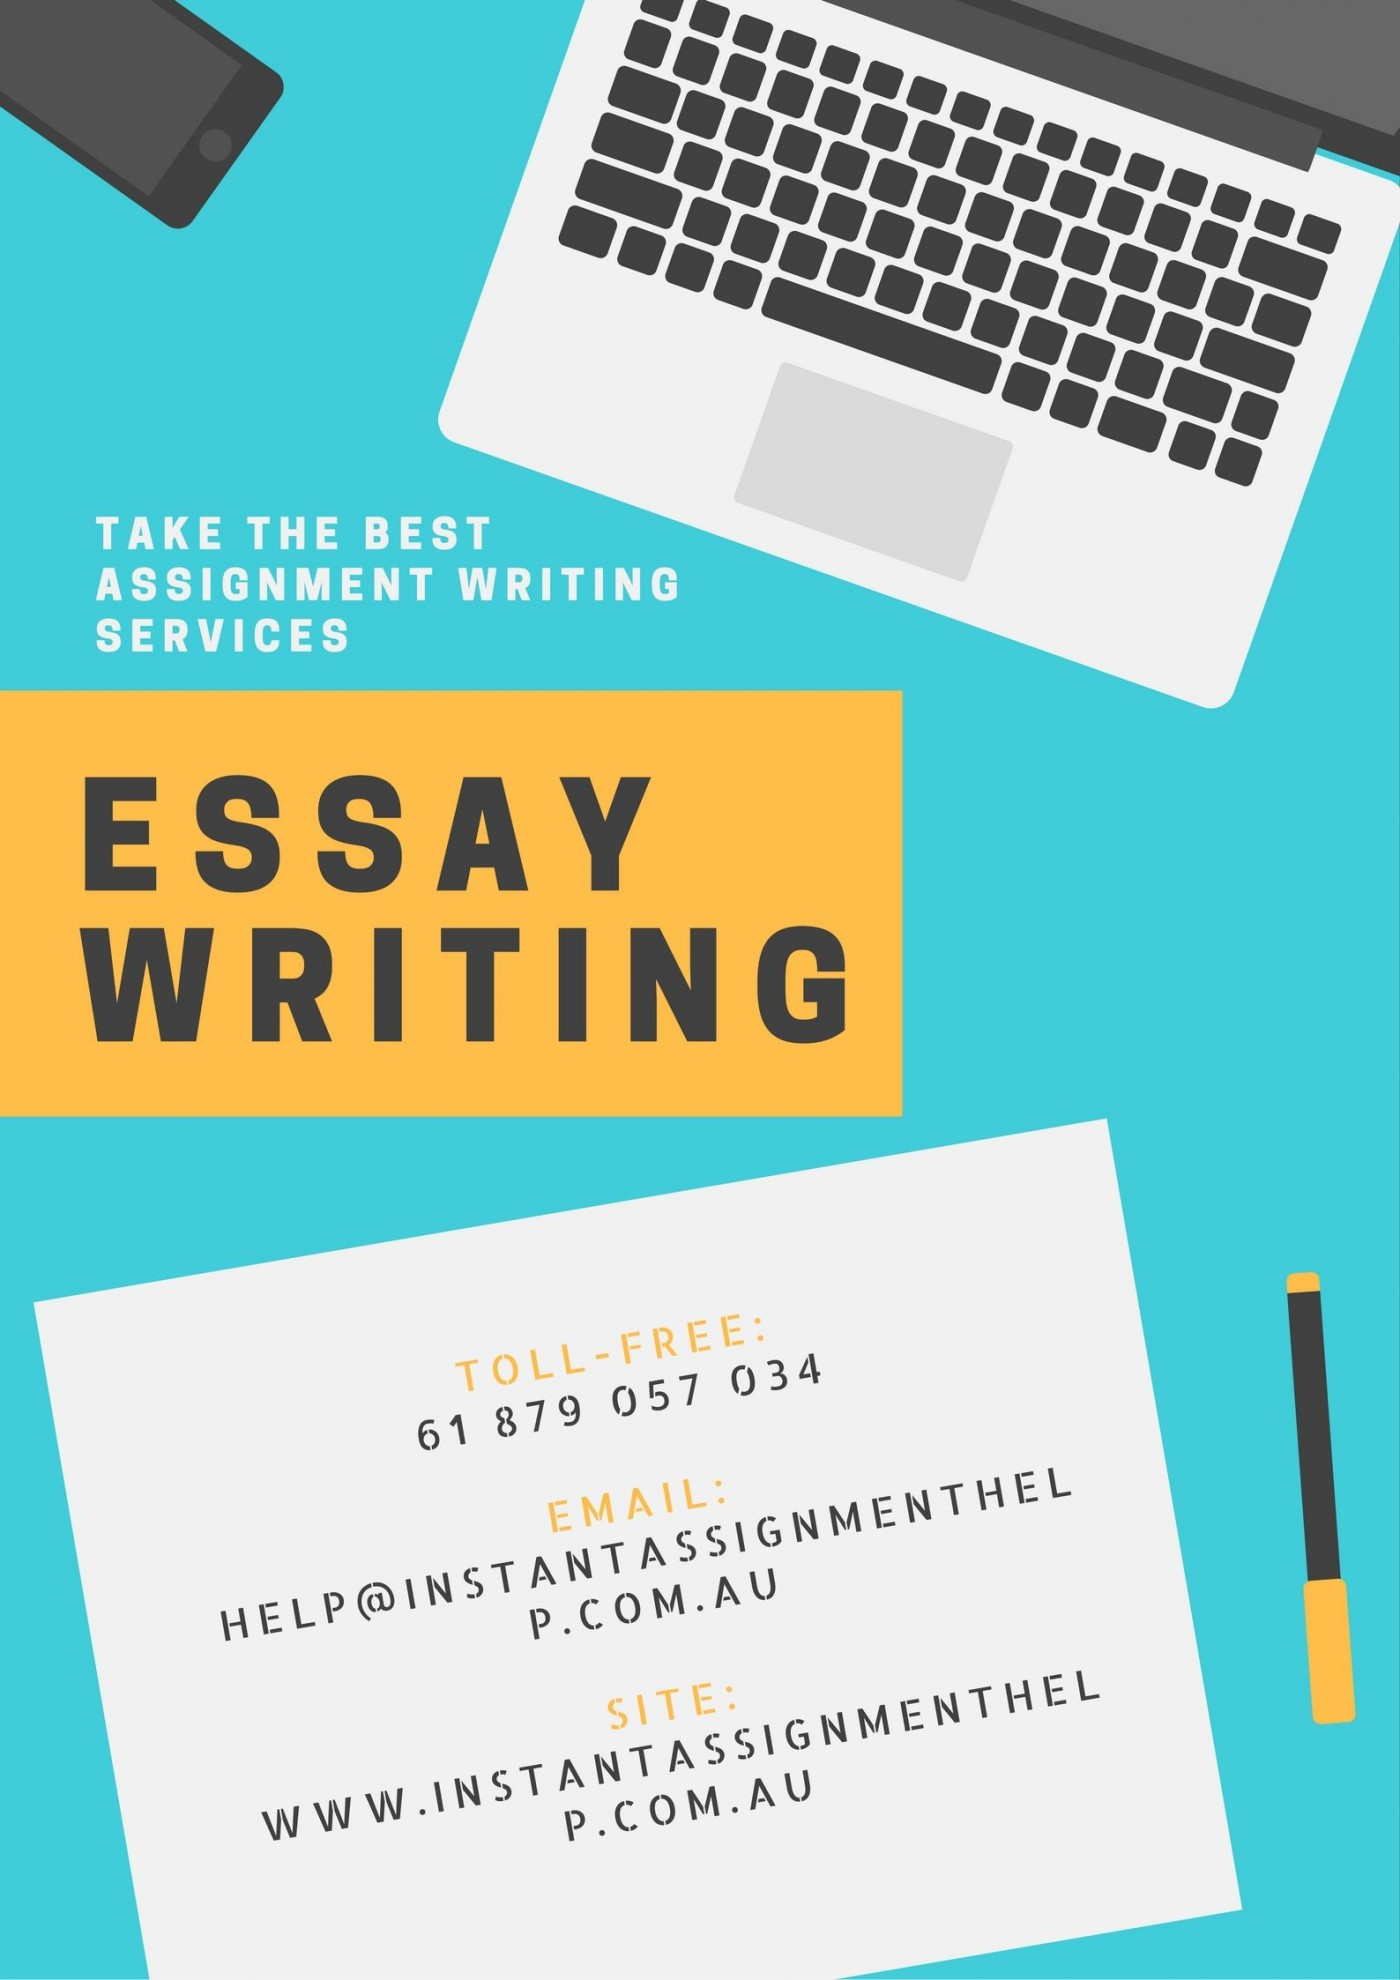 004 Essay Writing Help Example Frightening For Middle School Near Me 1400